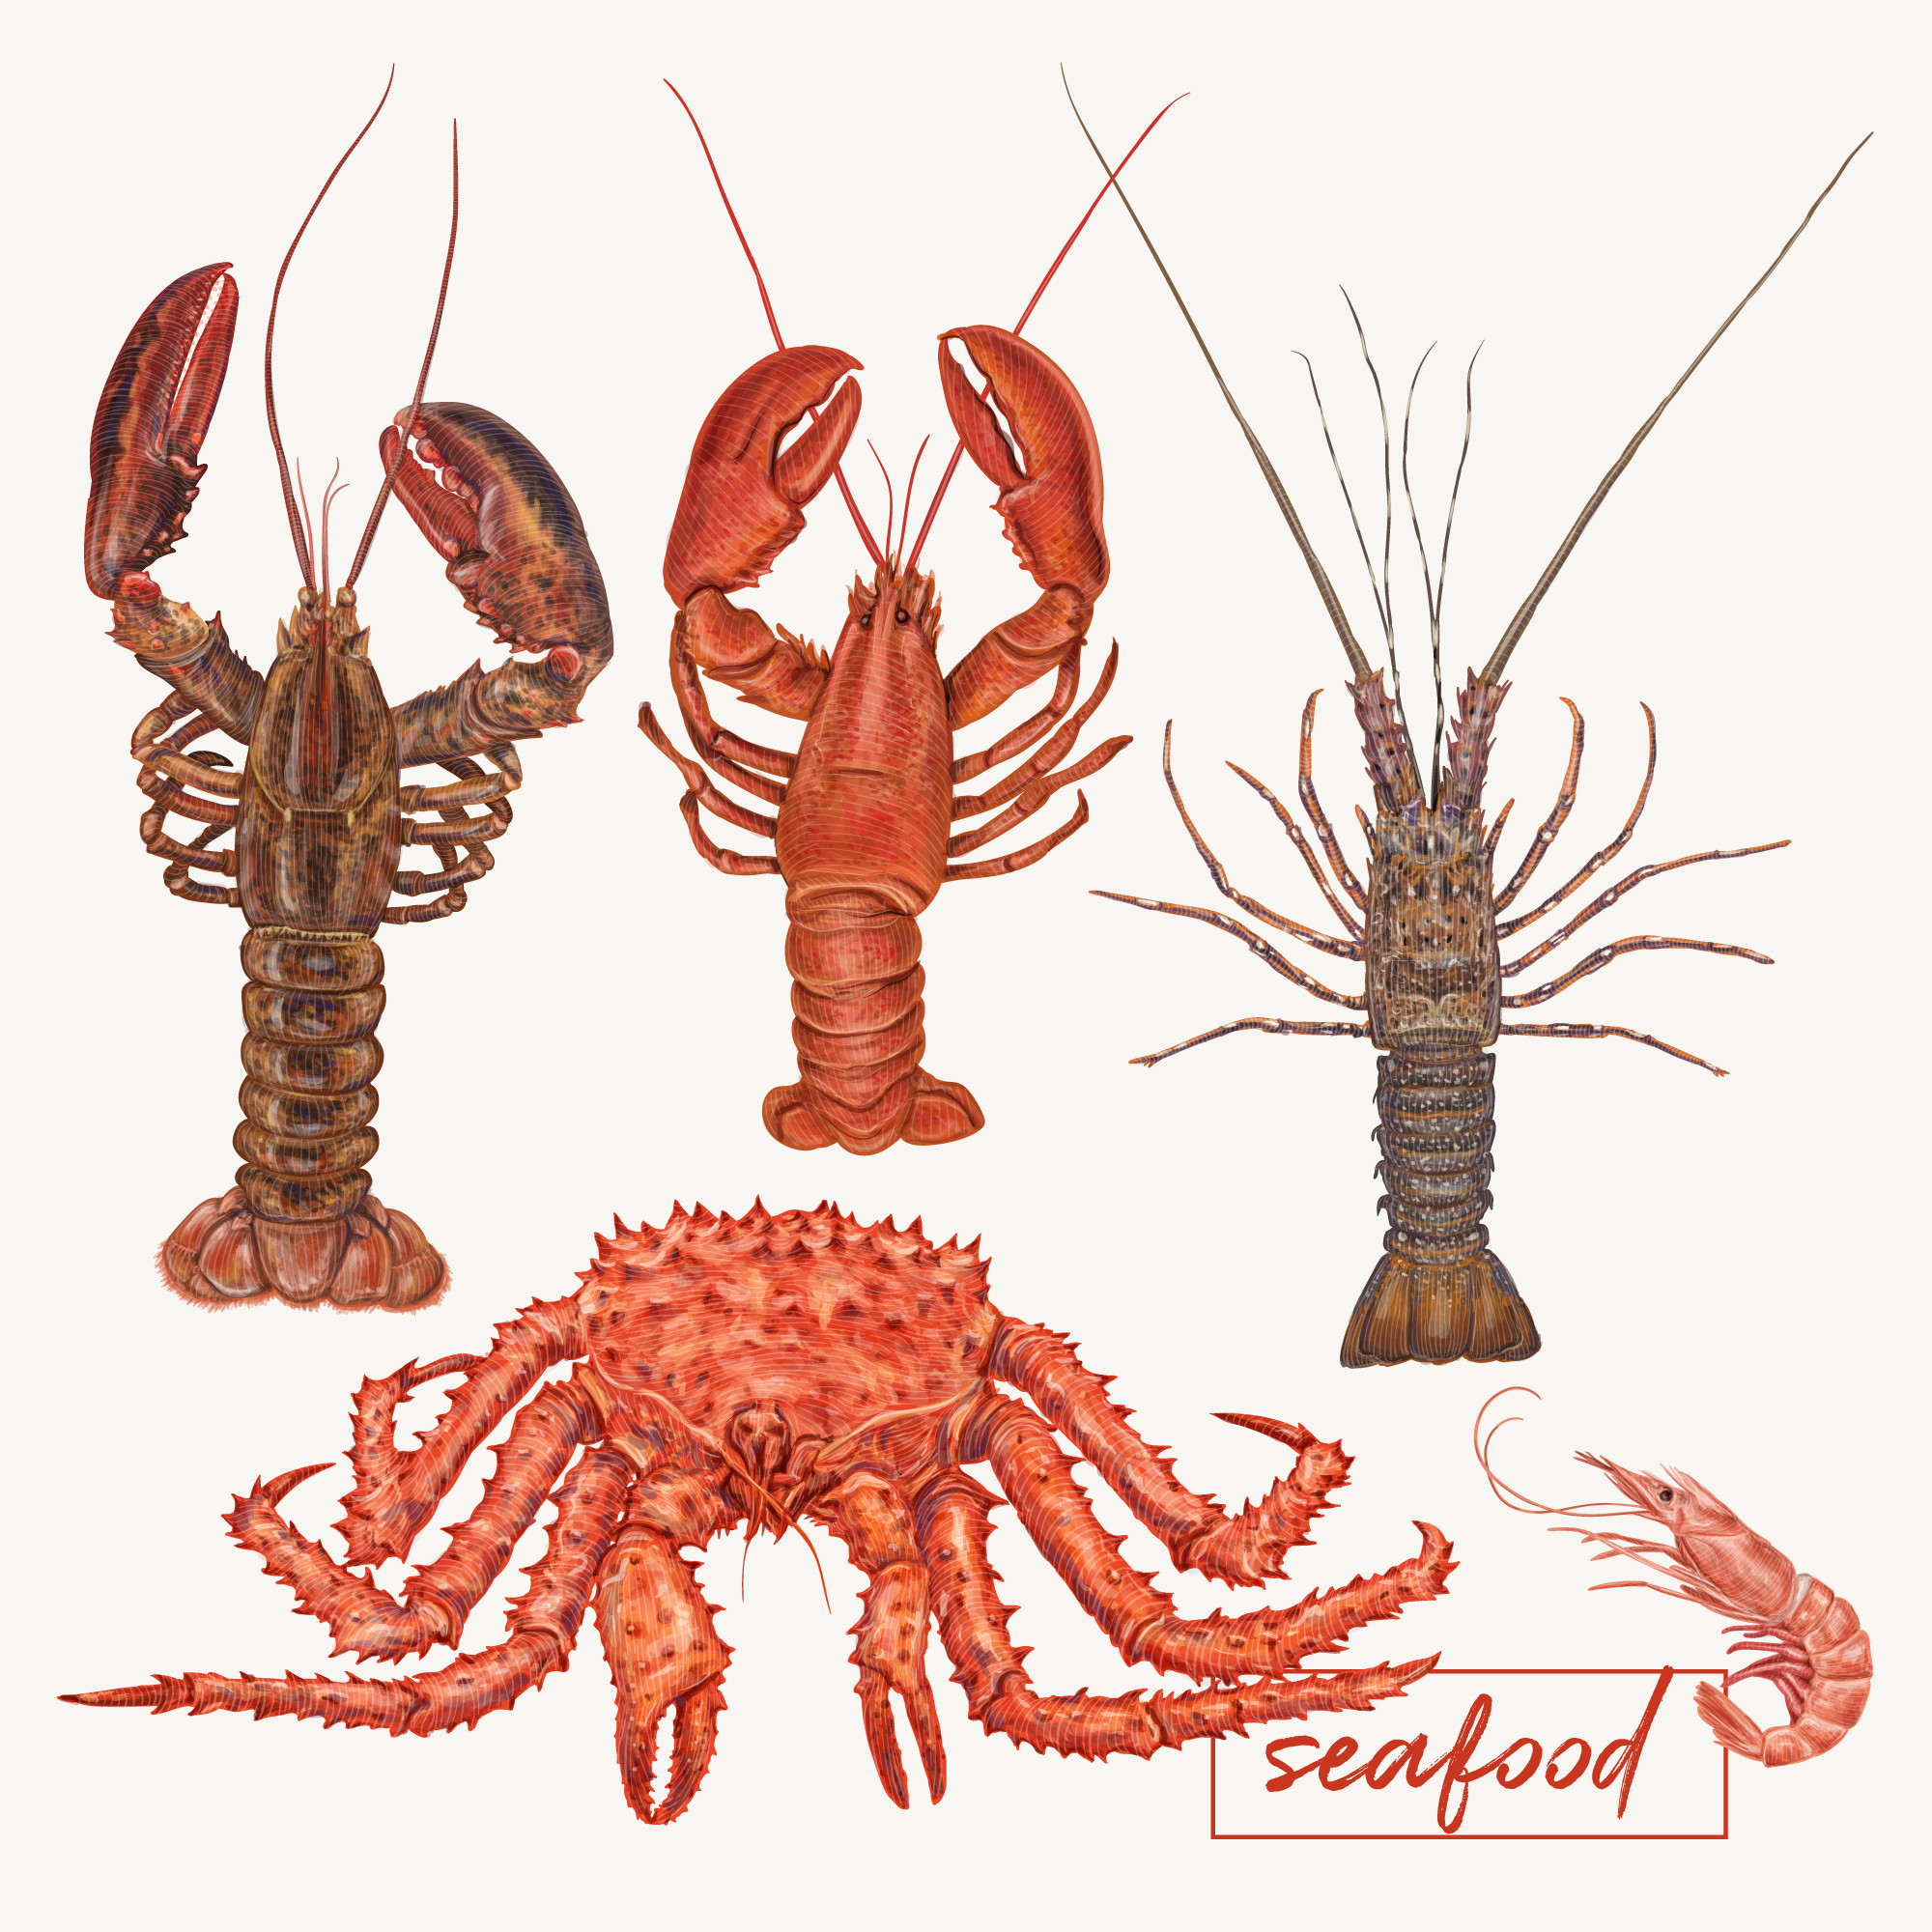 Lobsters and crabs illustration